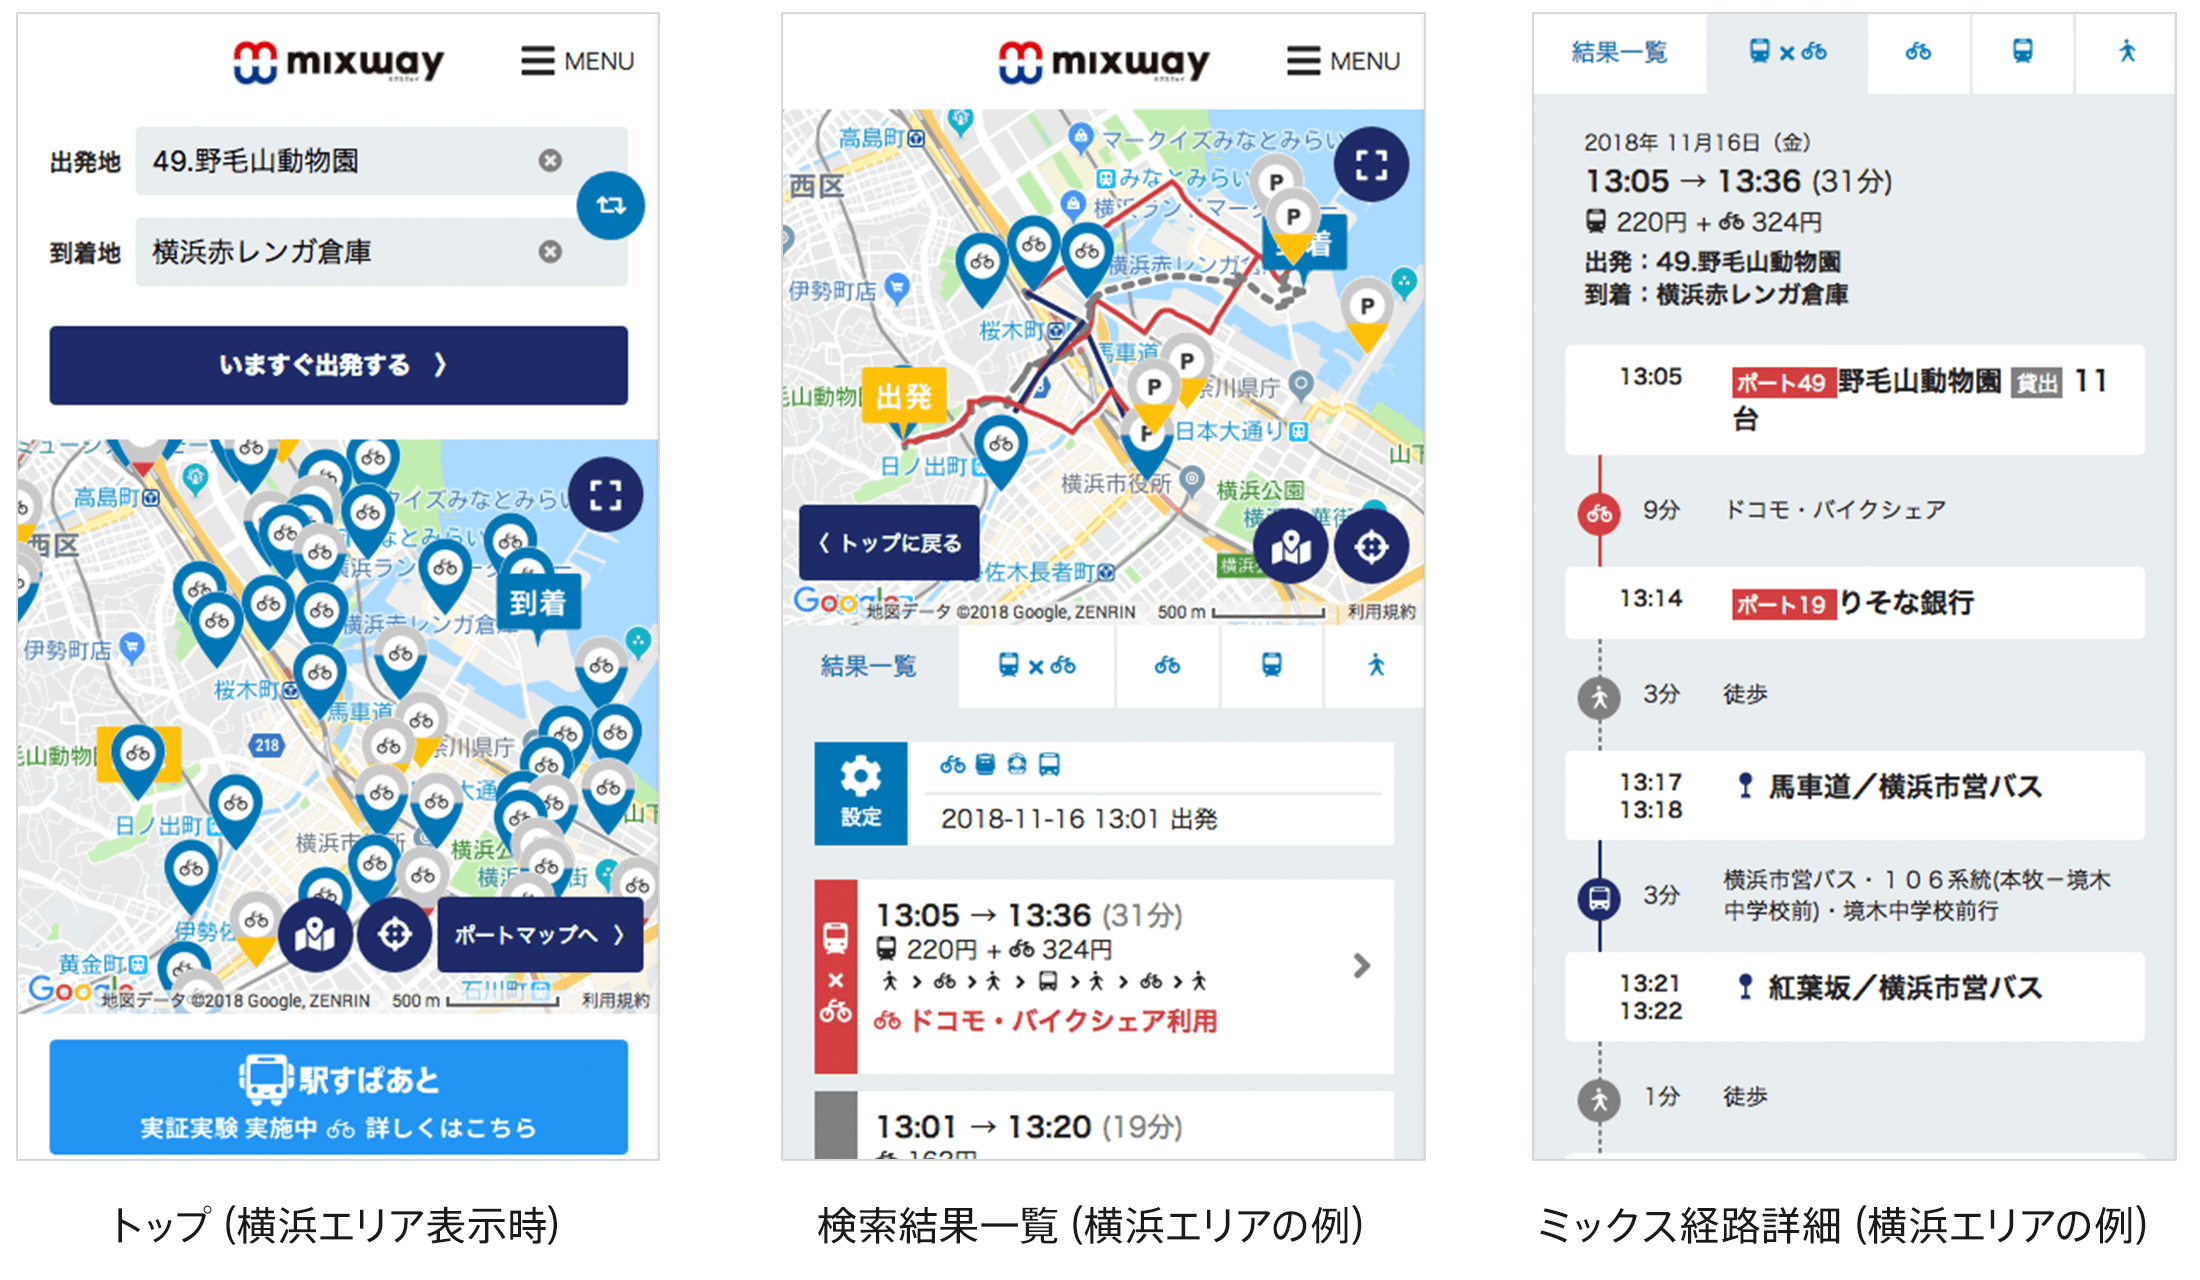 「mixway」利用イメージ(横浜エリア)